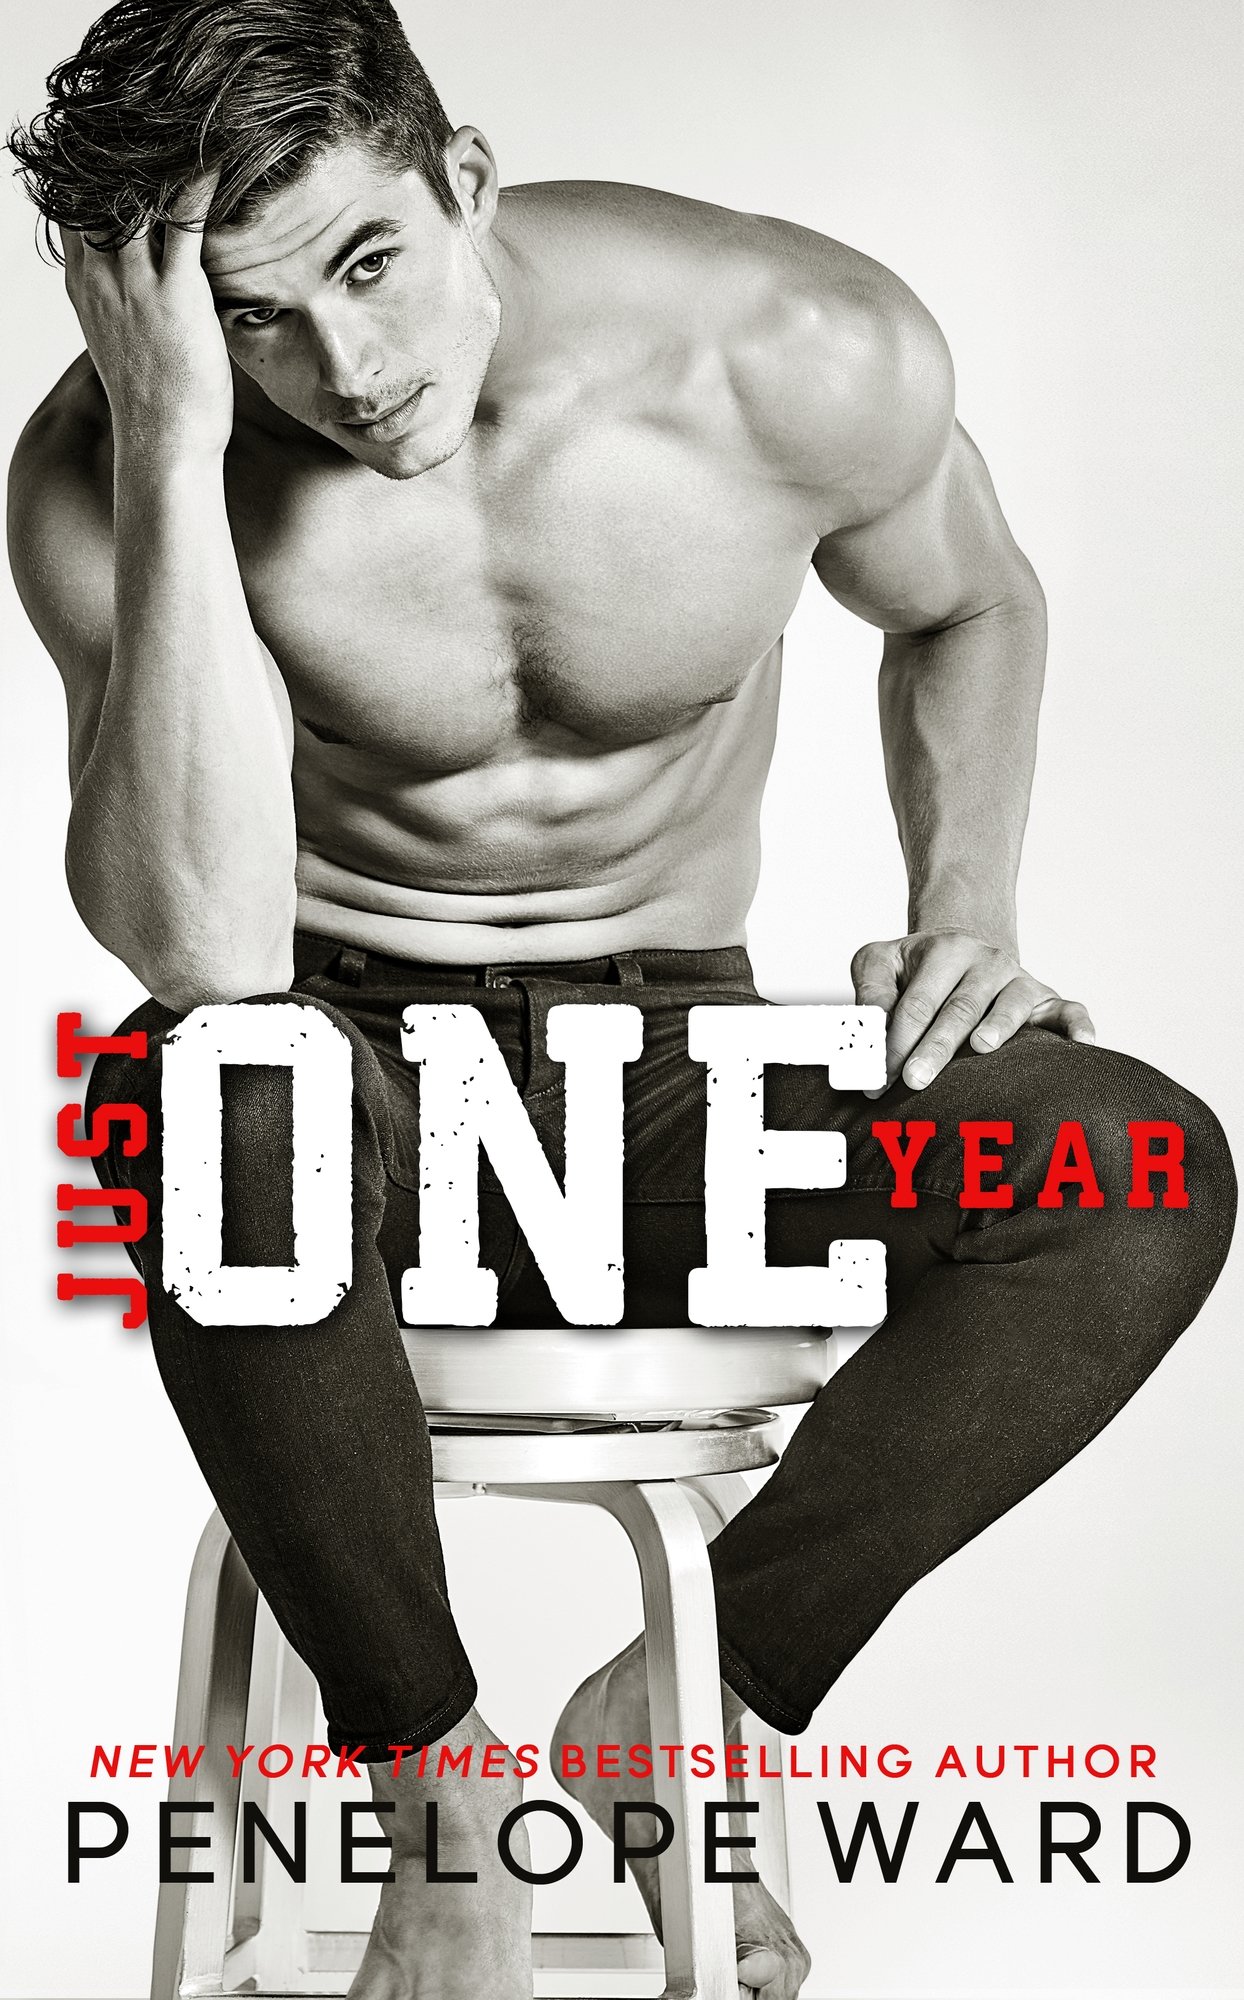 Just One Year - Penelope Ward